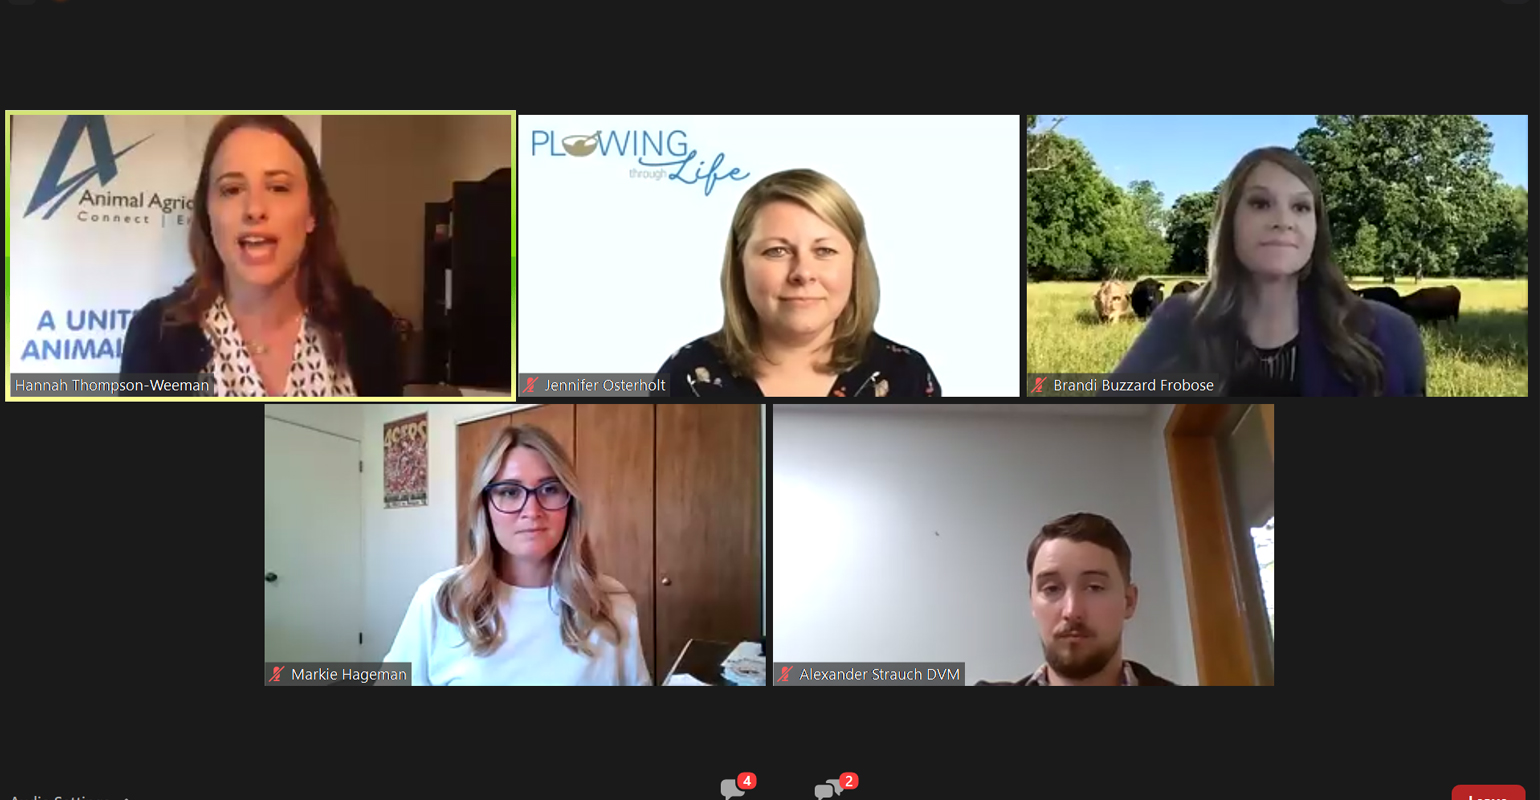 A panel of social media influencers  during the virtual Animal Agriculture Alliance